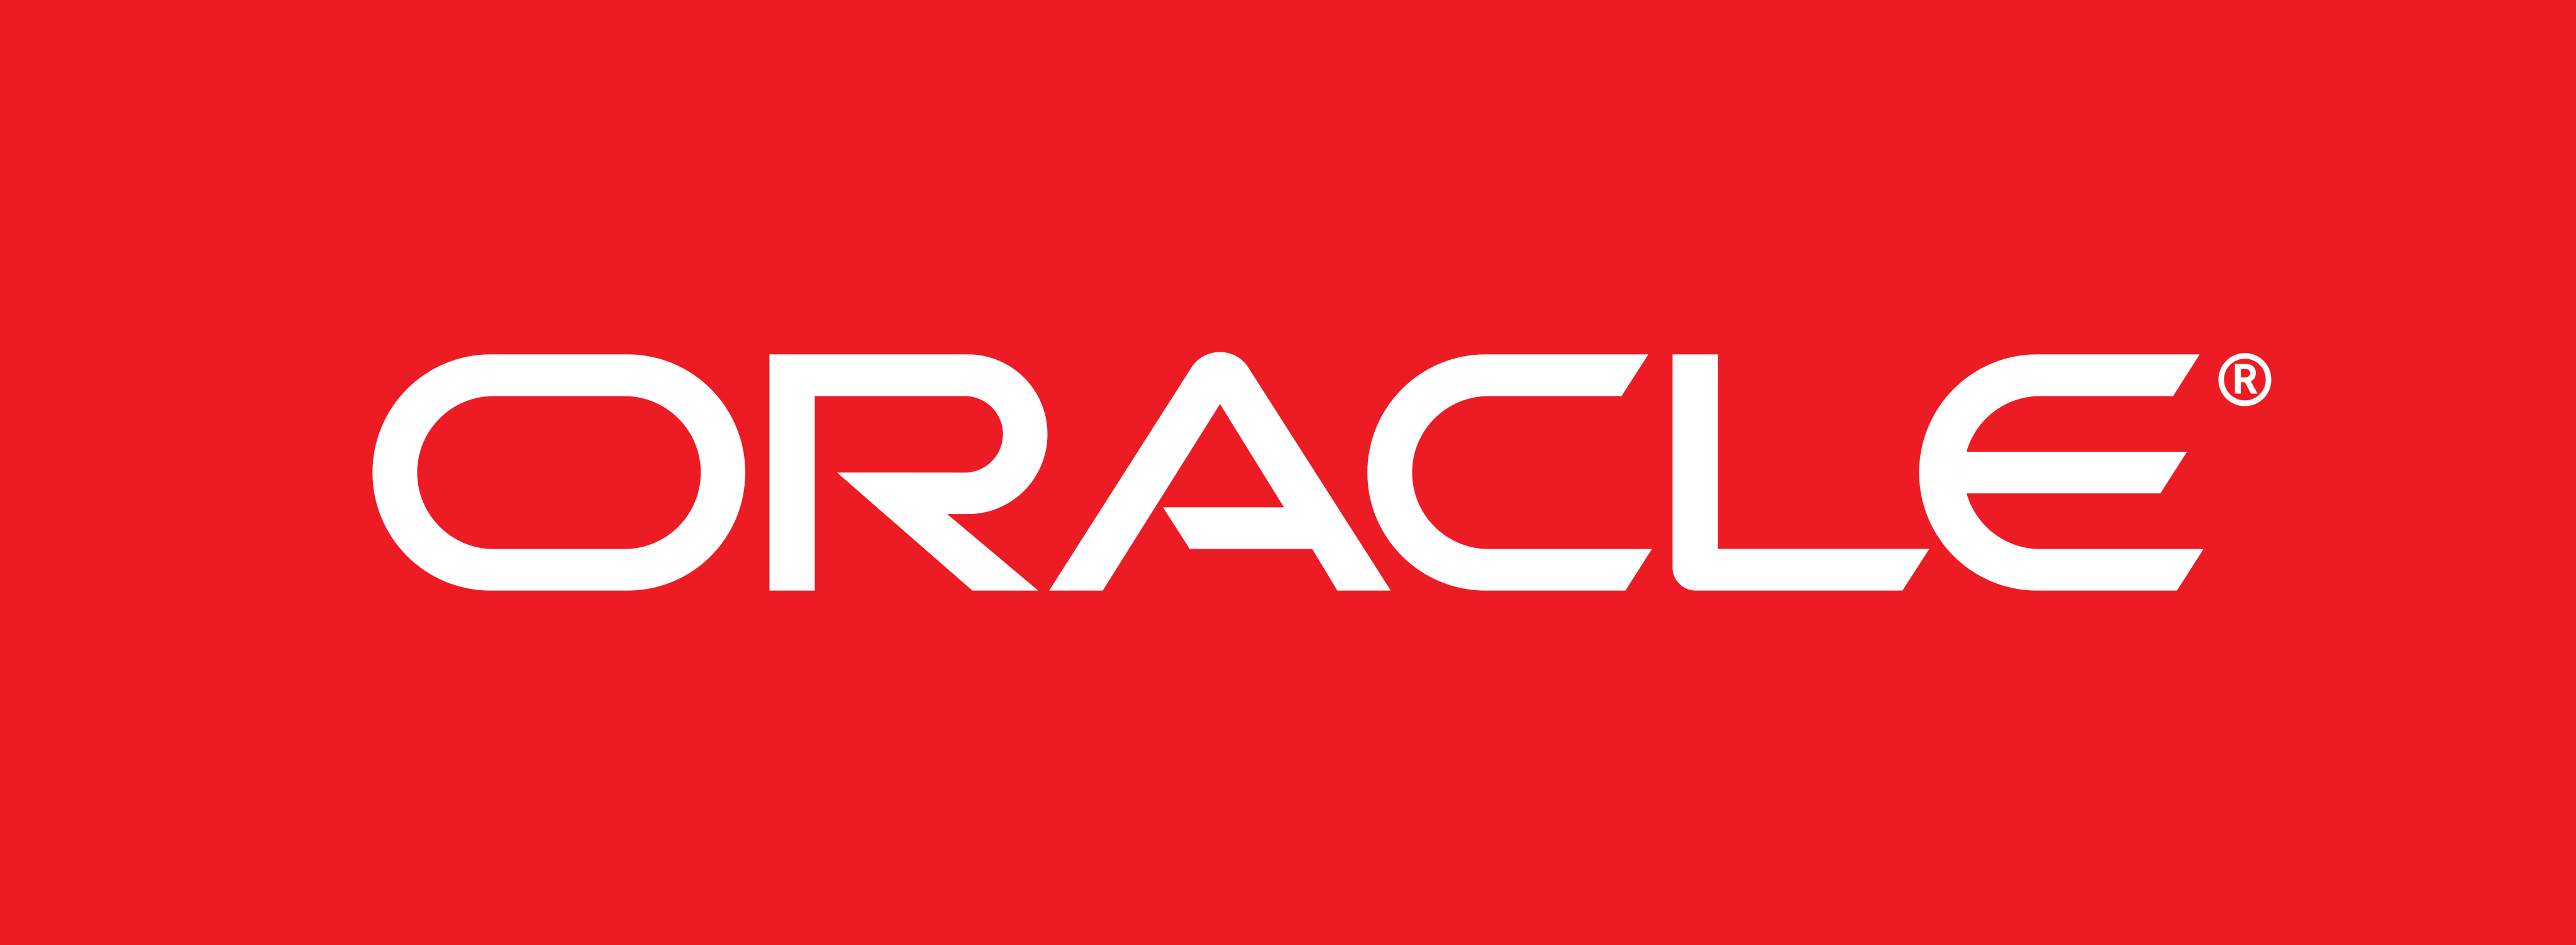 oracle logo 18 - Oracle Logo